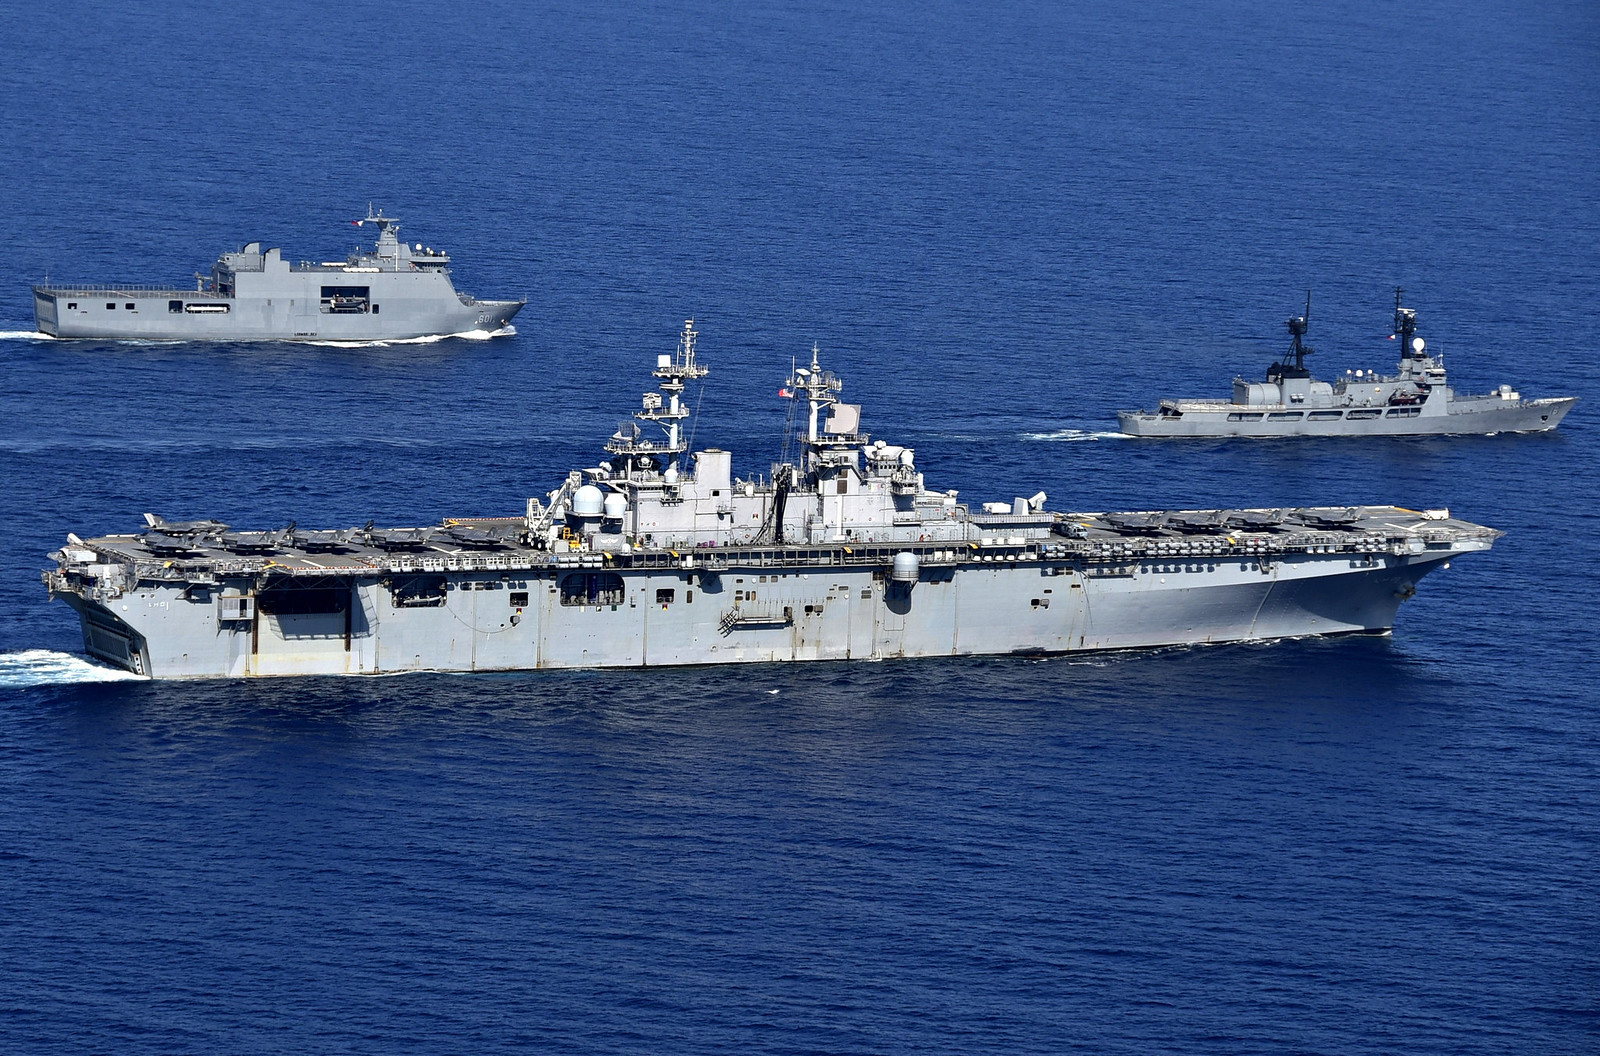 War in the South China Sea: How Bad It Could Get